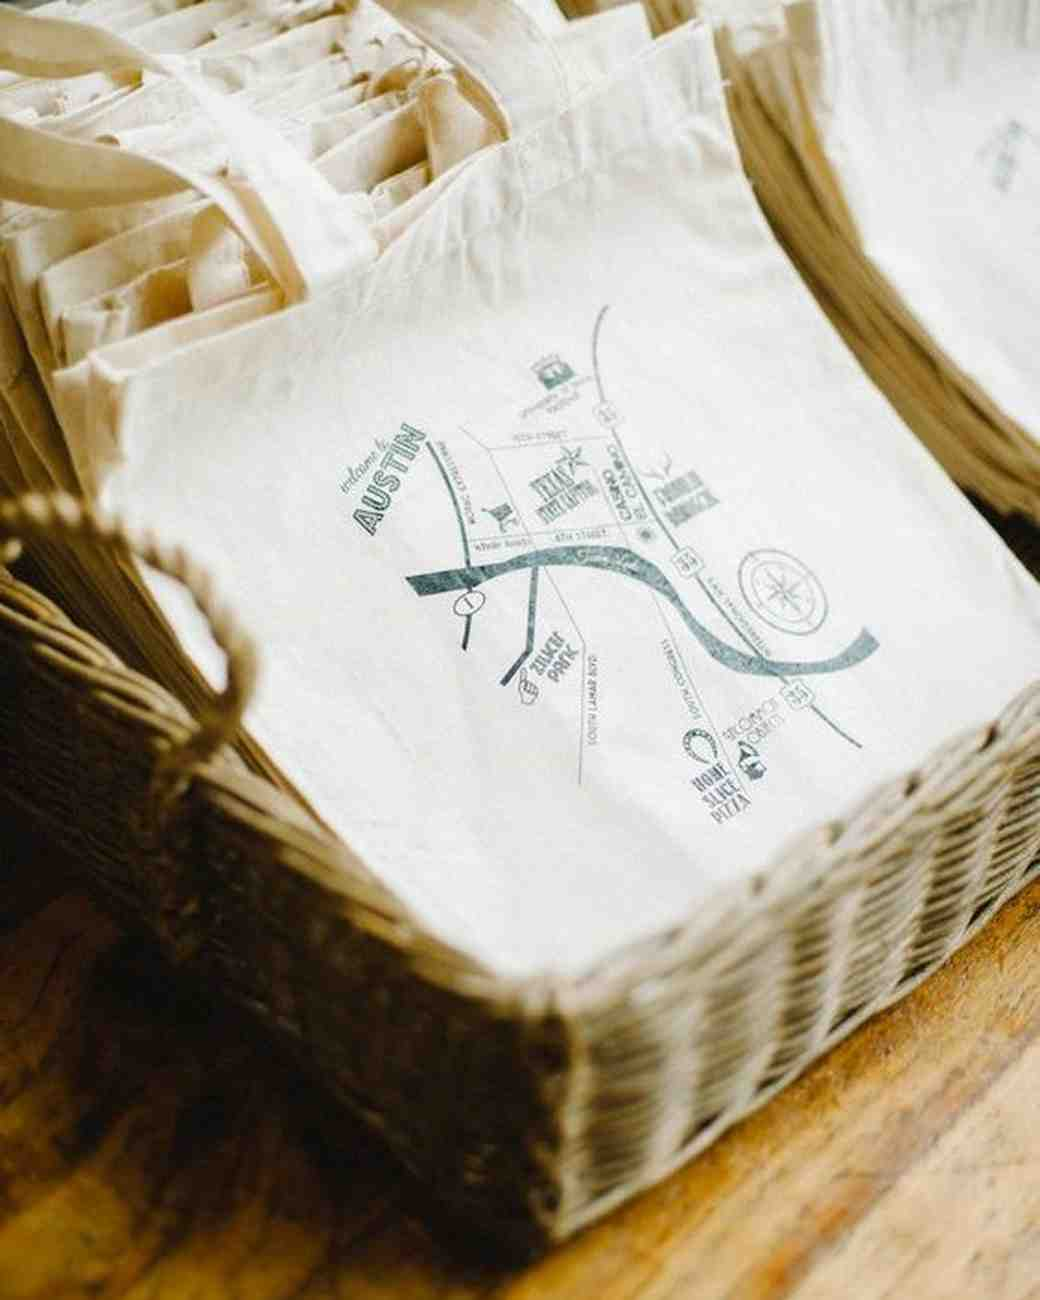 compass wedding ideas welcome map on canvas bags